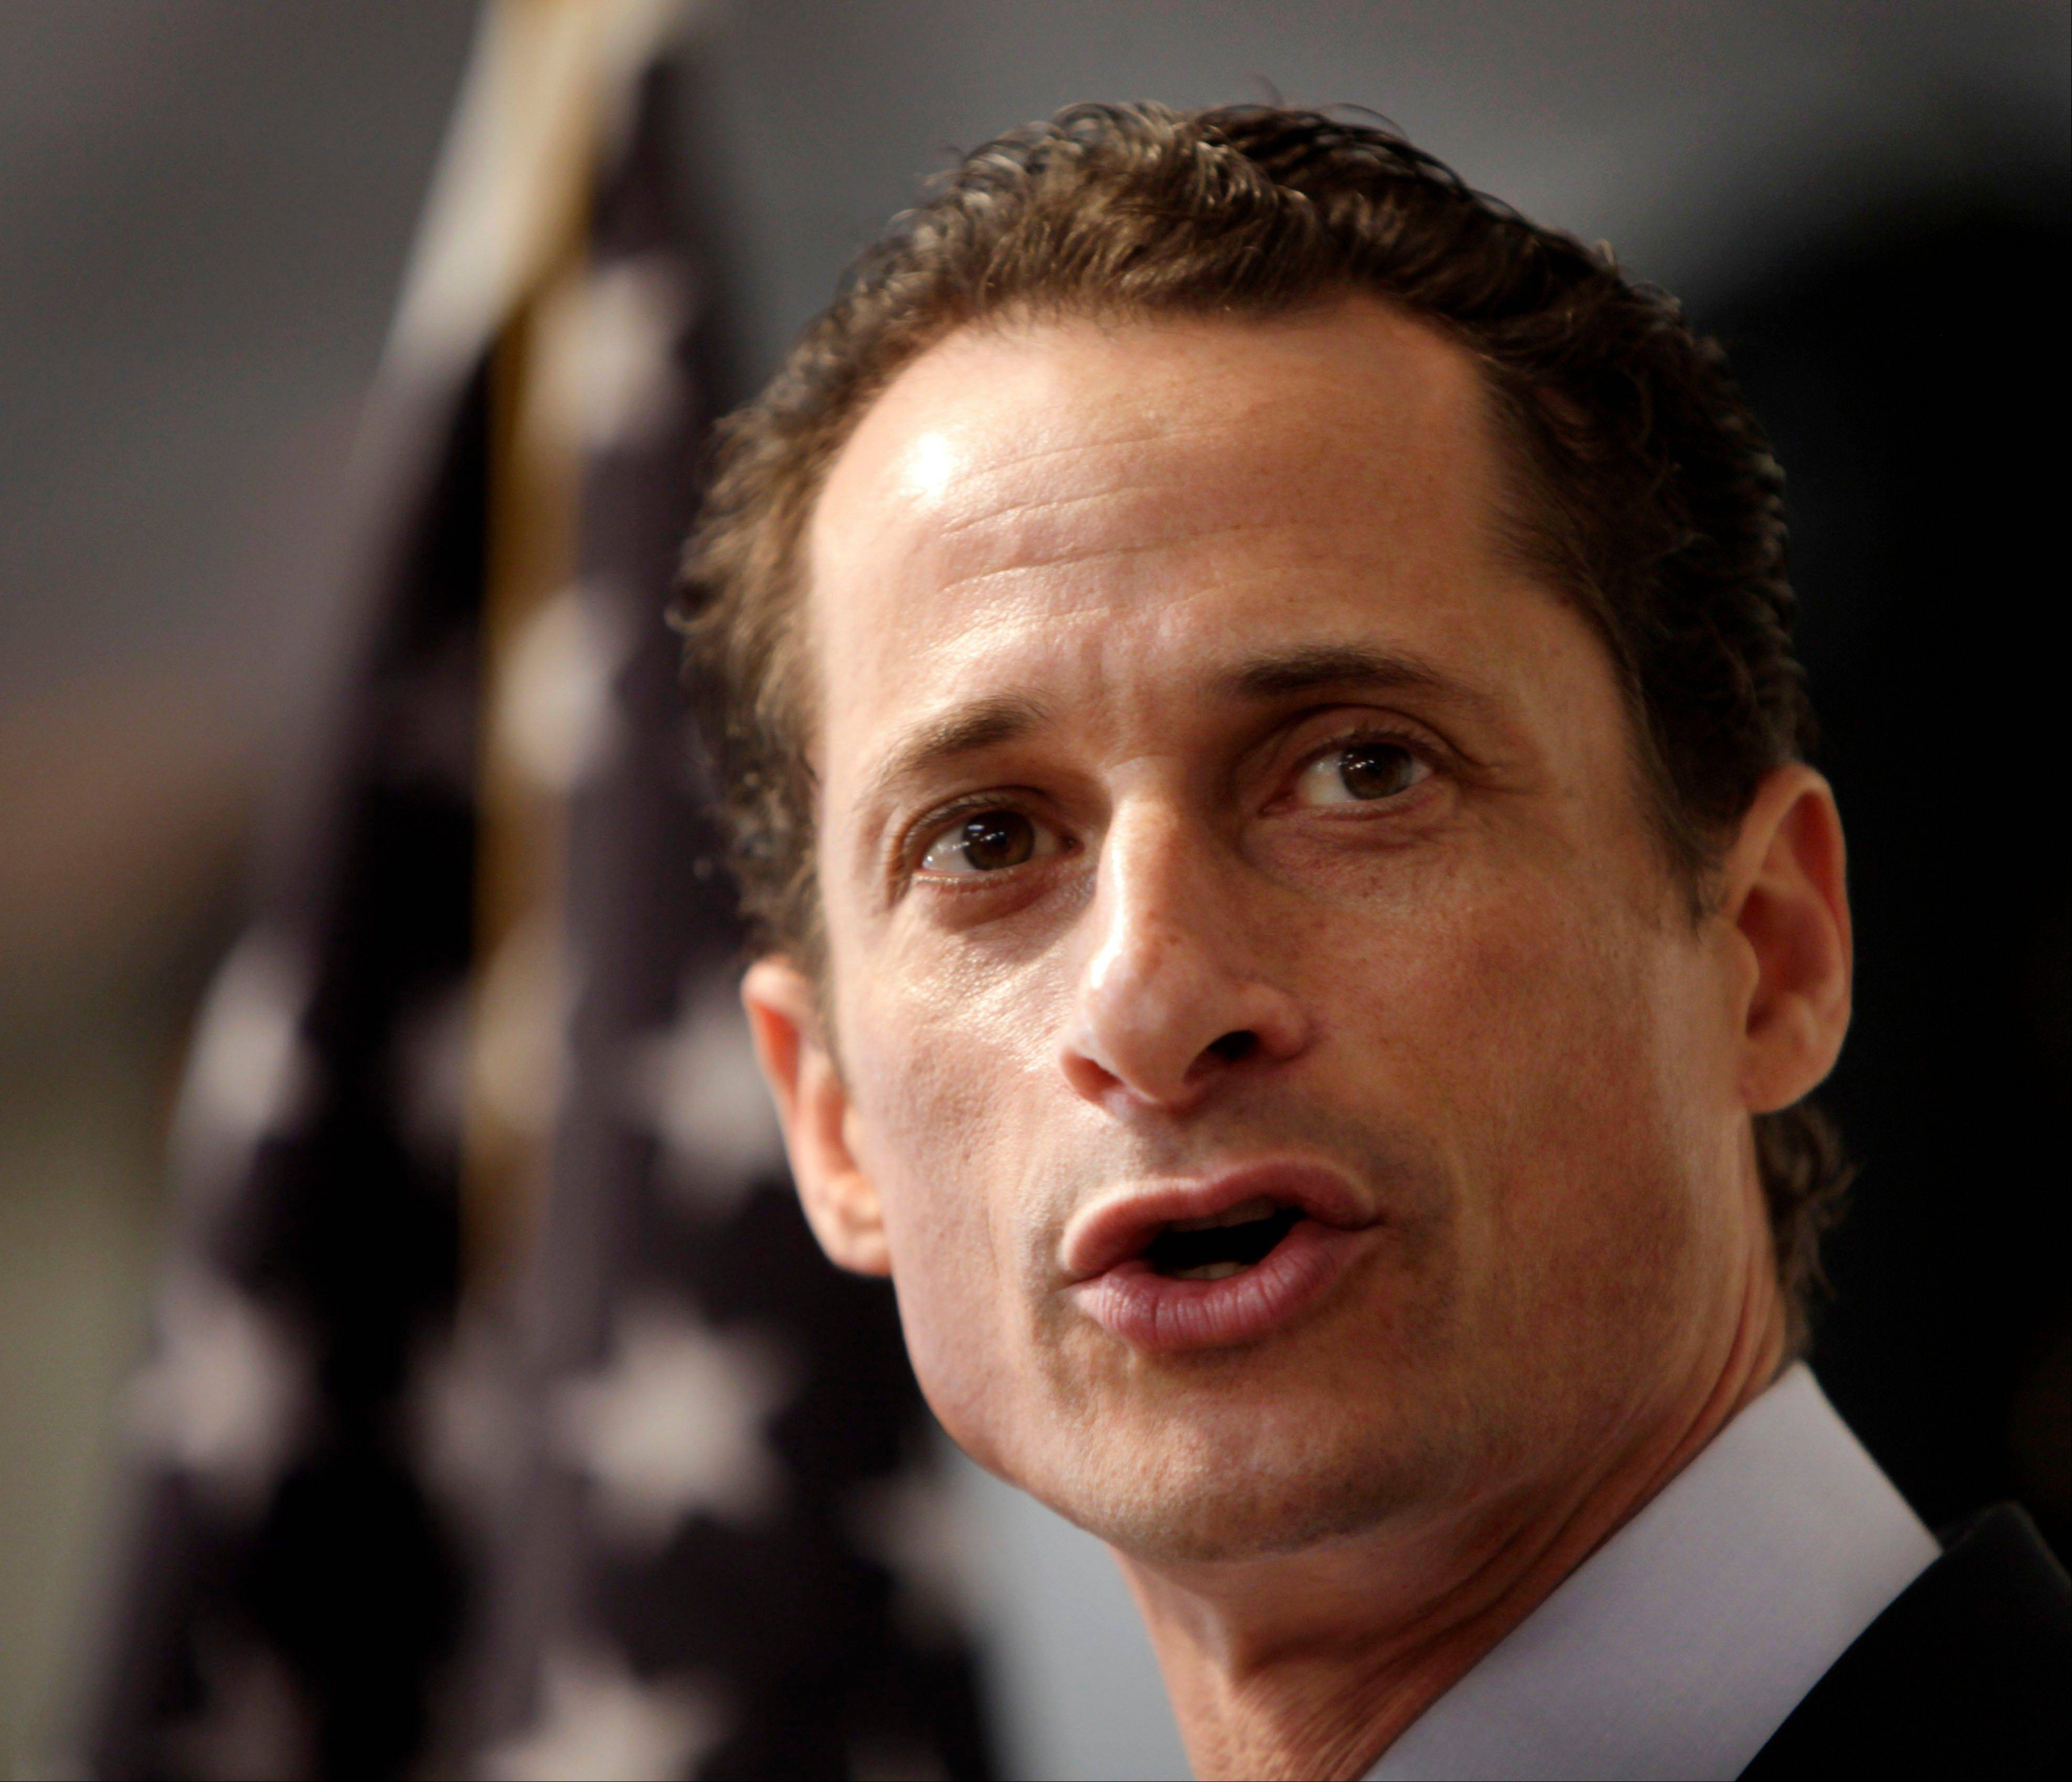 Anthony Weiner, the Democratic ex-congressman who resigned over raunchy tweets said late Tuesday, May 21, 2013, that he's in the New York City mayoral race.